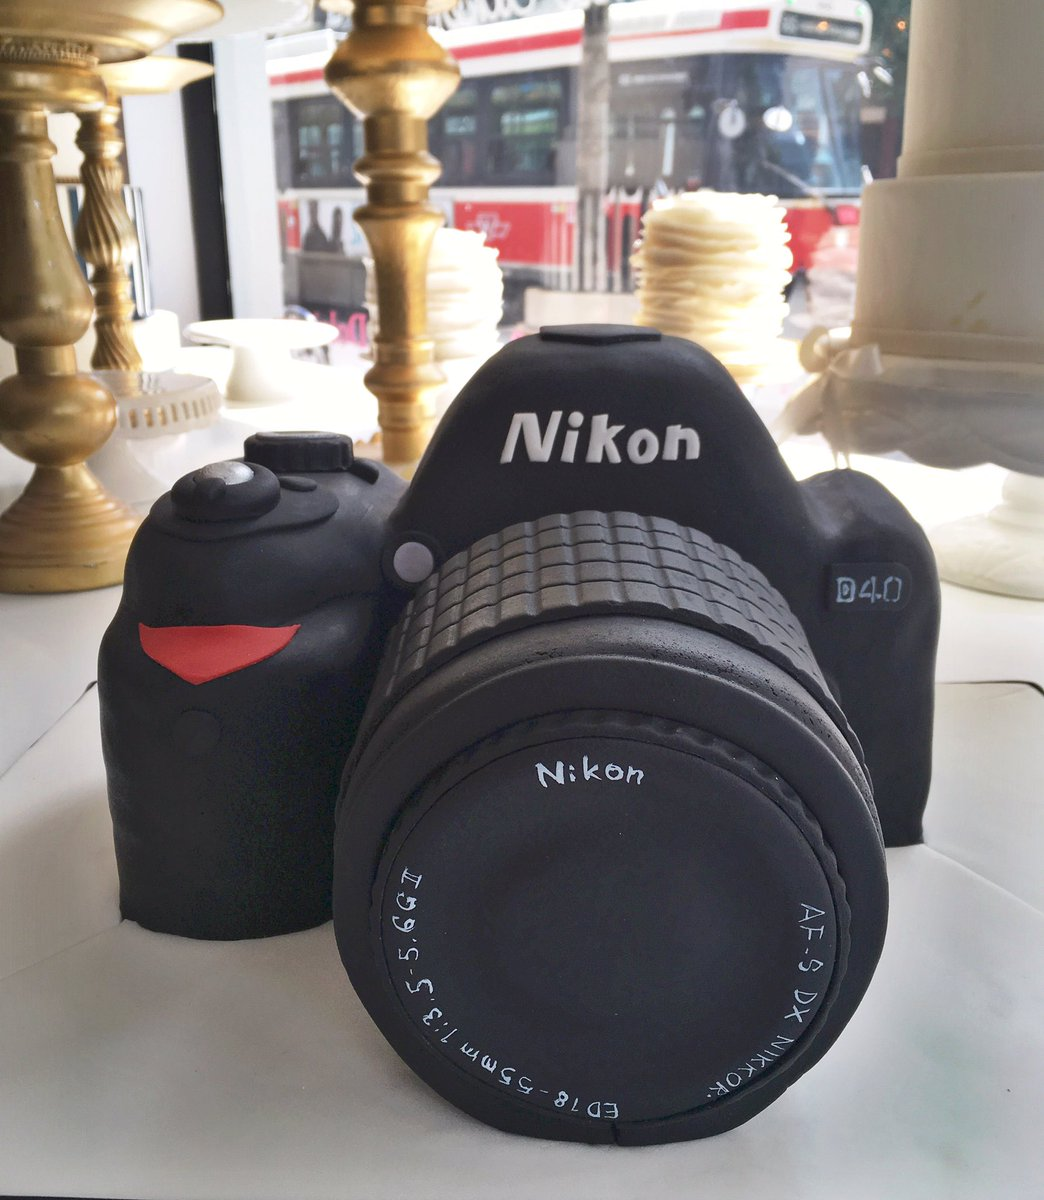 Check out this amazing @NikonCanada cake our super cake design team made! https://t.co/JOMqi72BZX